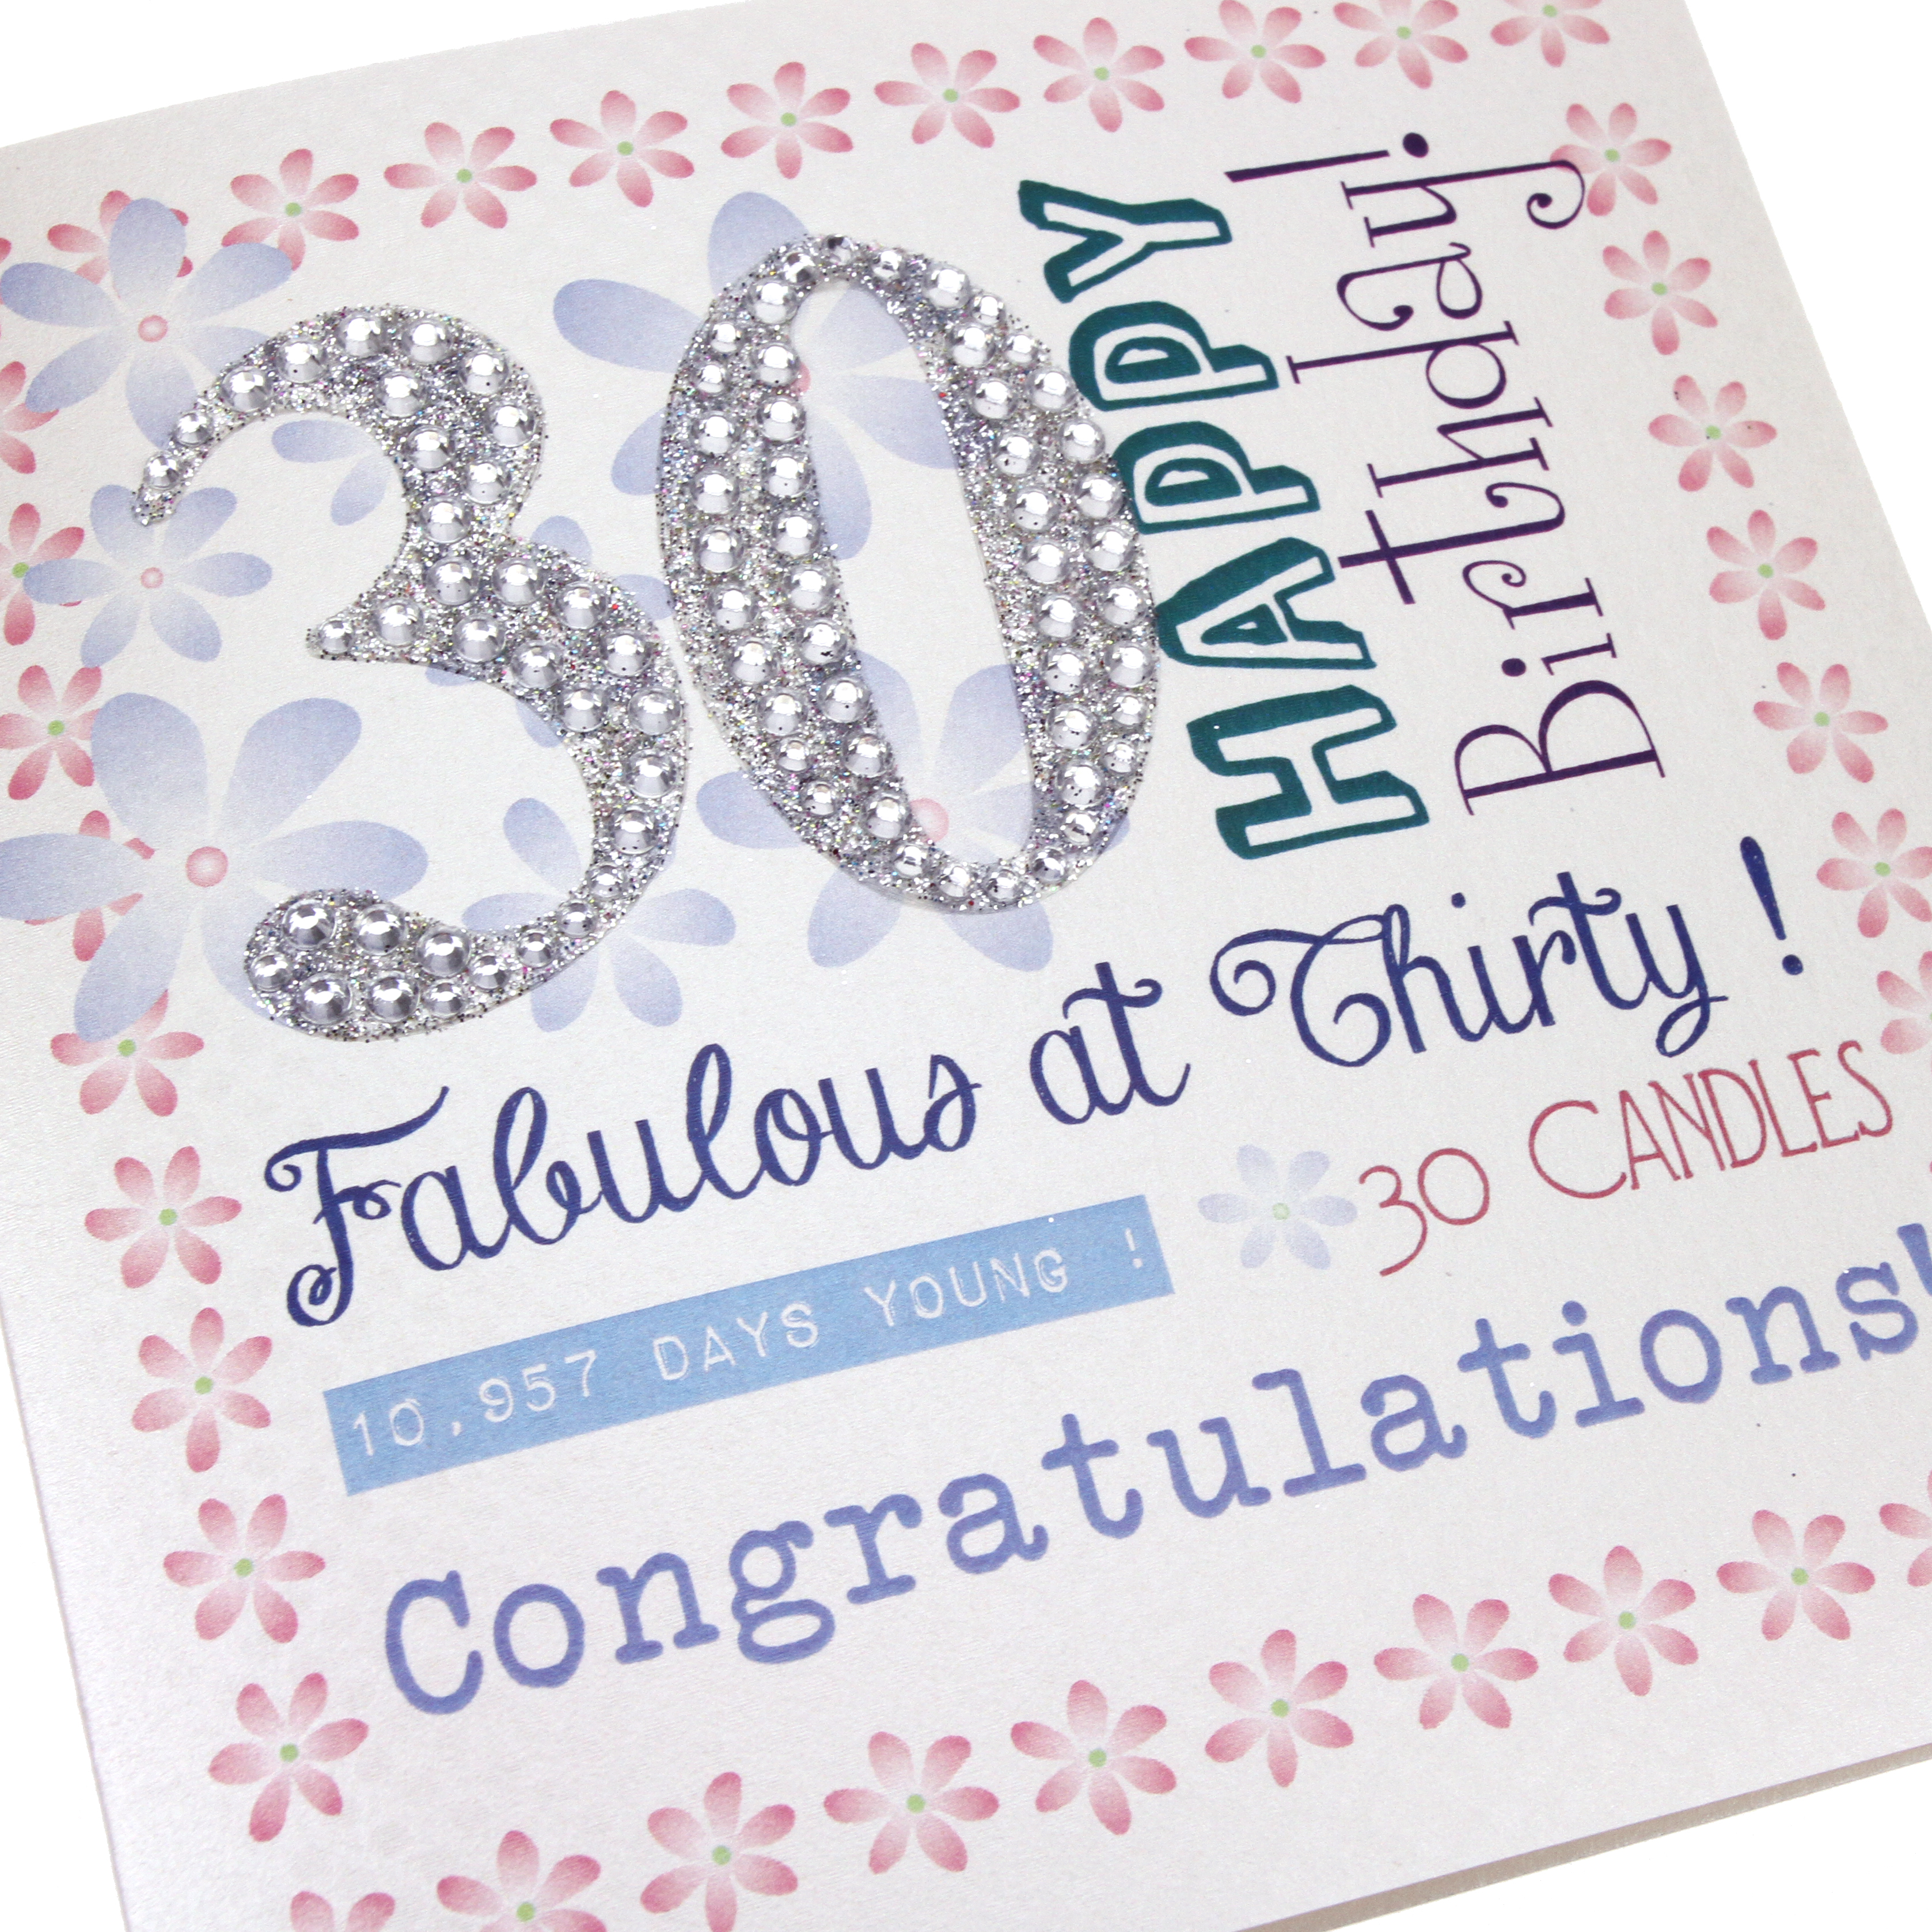 handmade 30th birthday card ideas ; fb323b9ae022a5e06e879ca5398c3f51